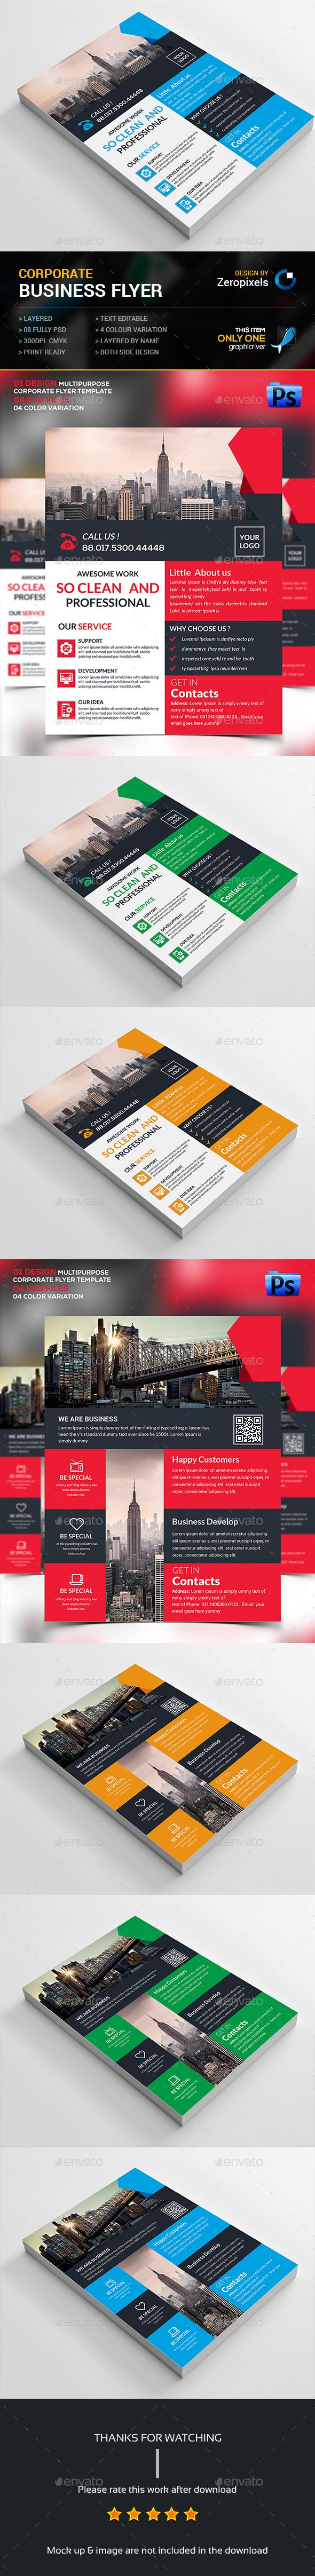 The 7 best flyers images on pinterest flyer template promotional buy business flyer bundle by zeropixels on graphicriver features easy customizable and editable flyer in with bleed cmyk color design in 300 dpi fandeluxe Image collections